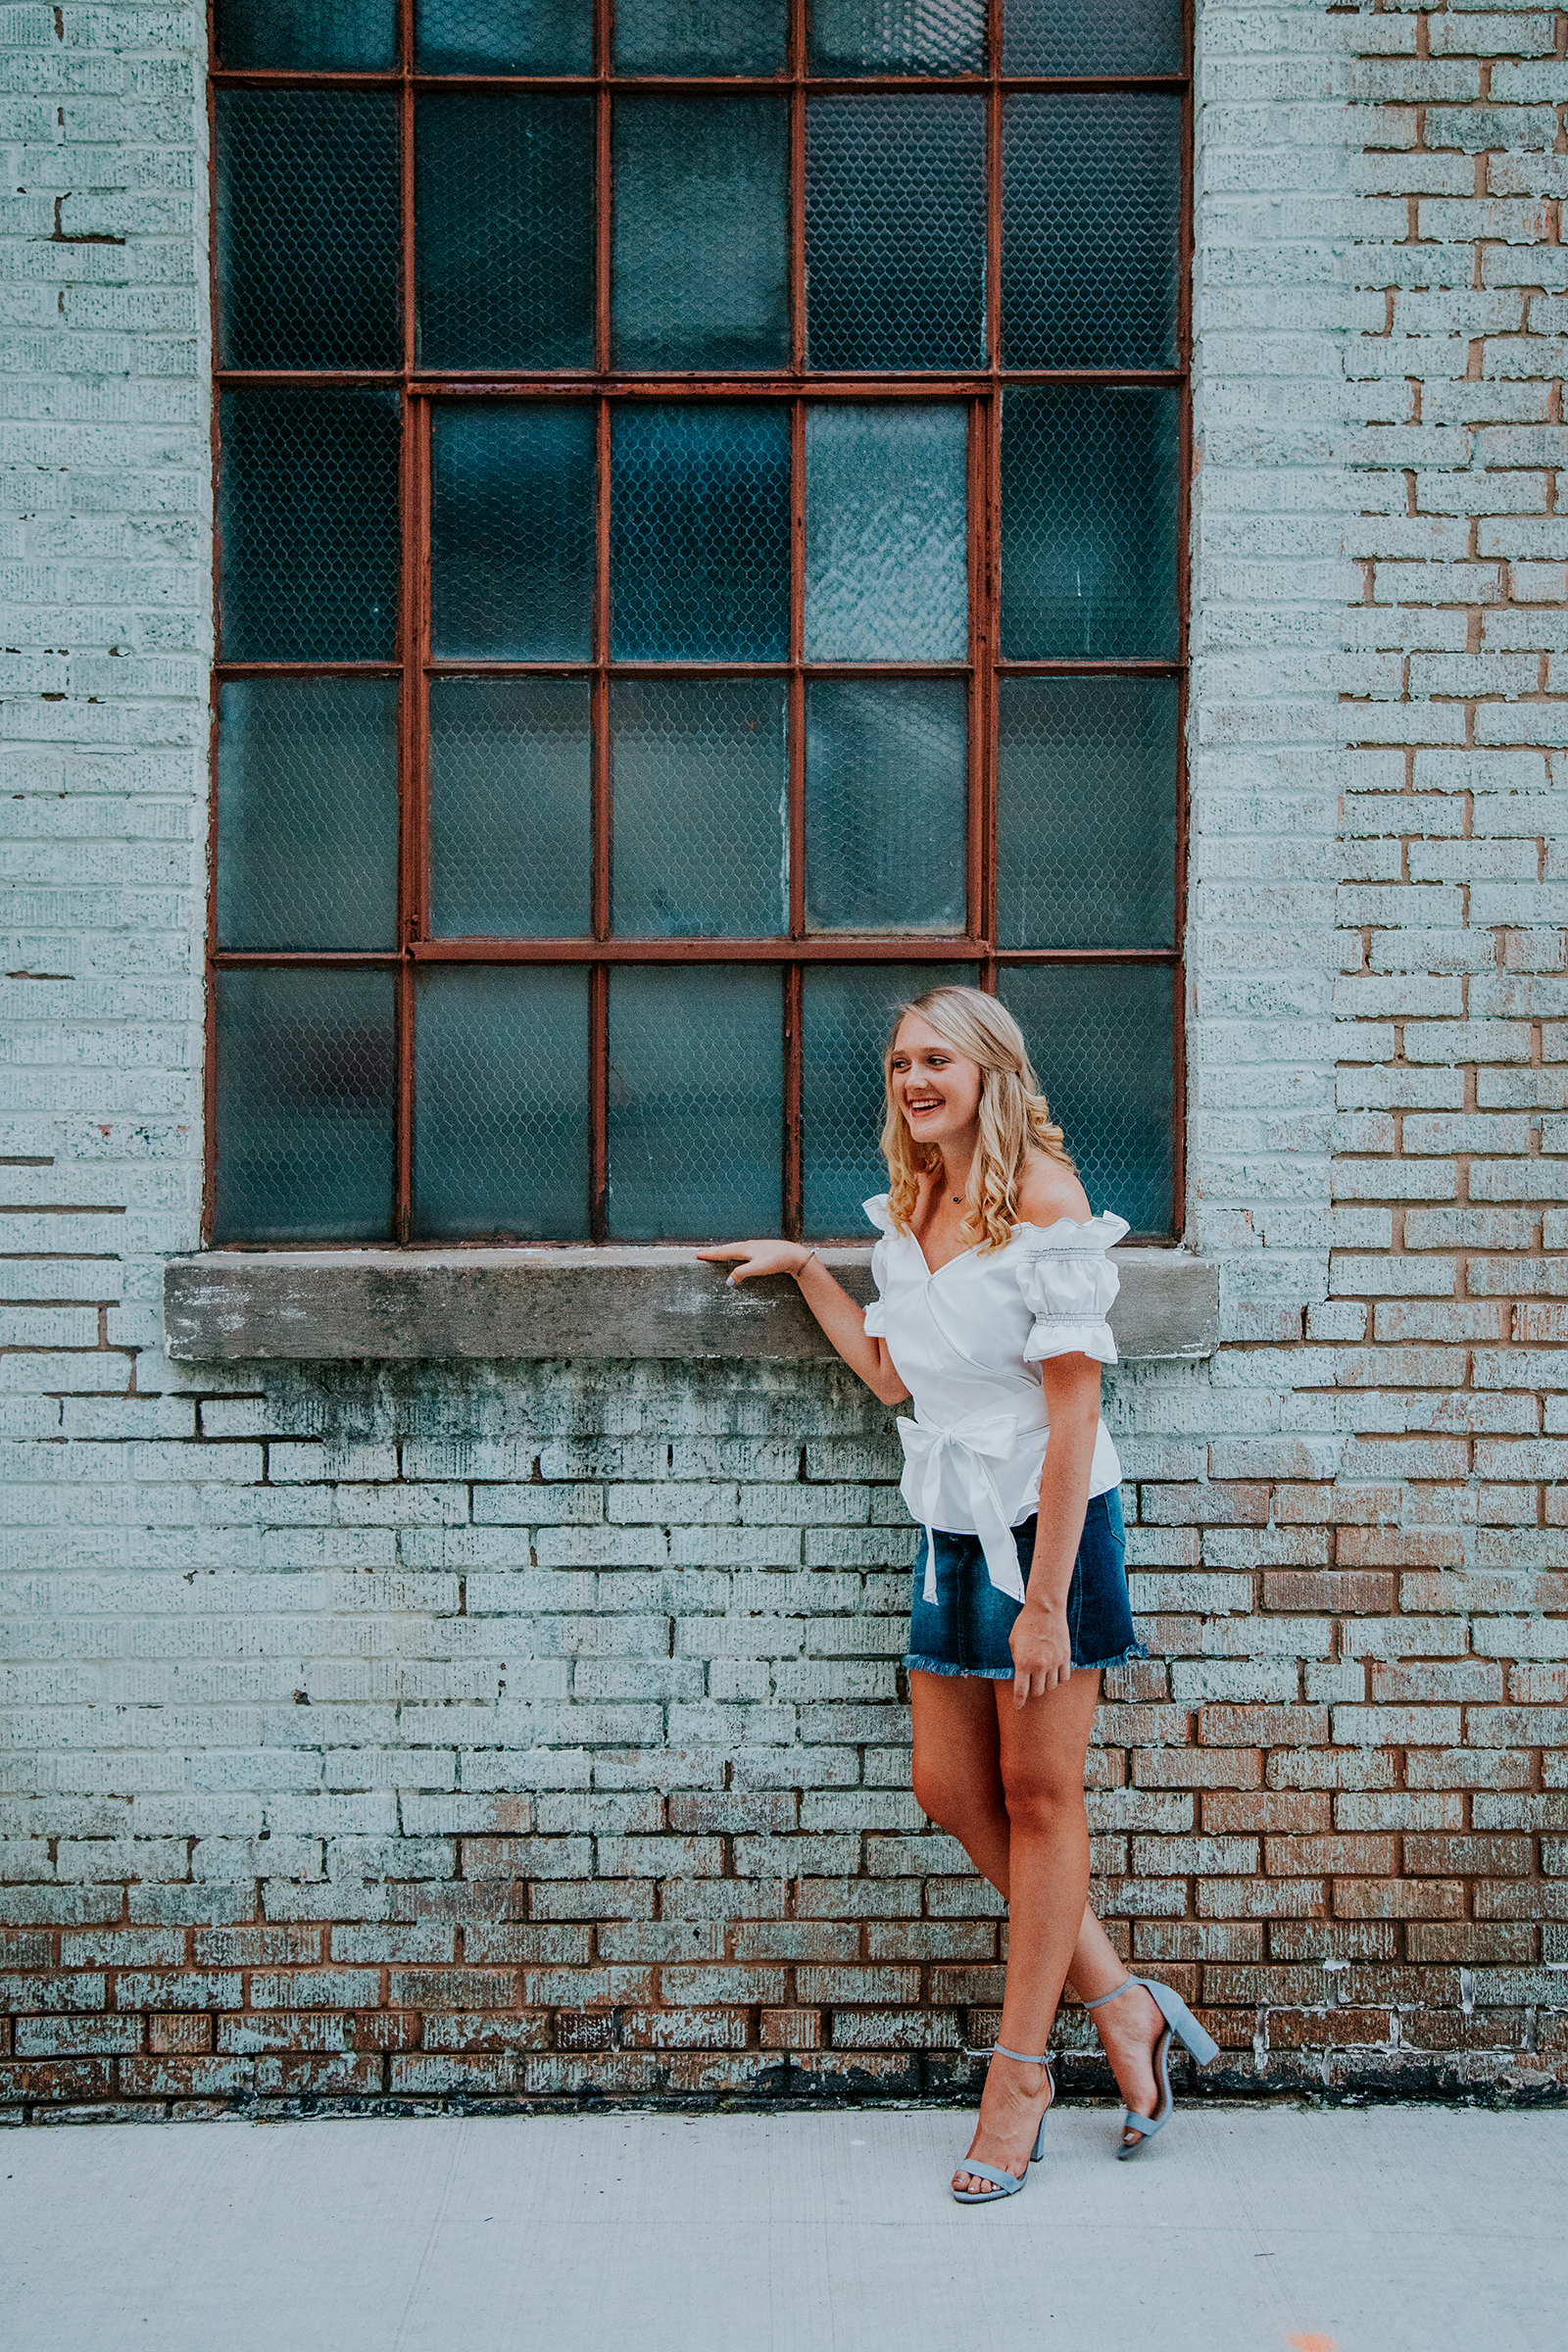 best knoxville photographers